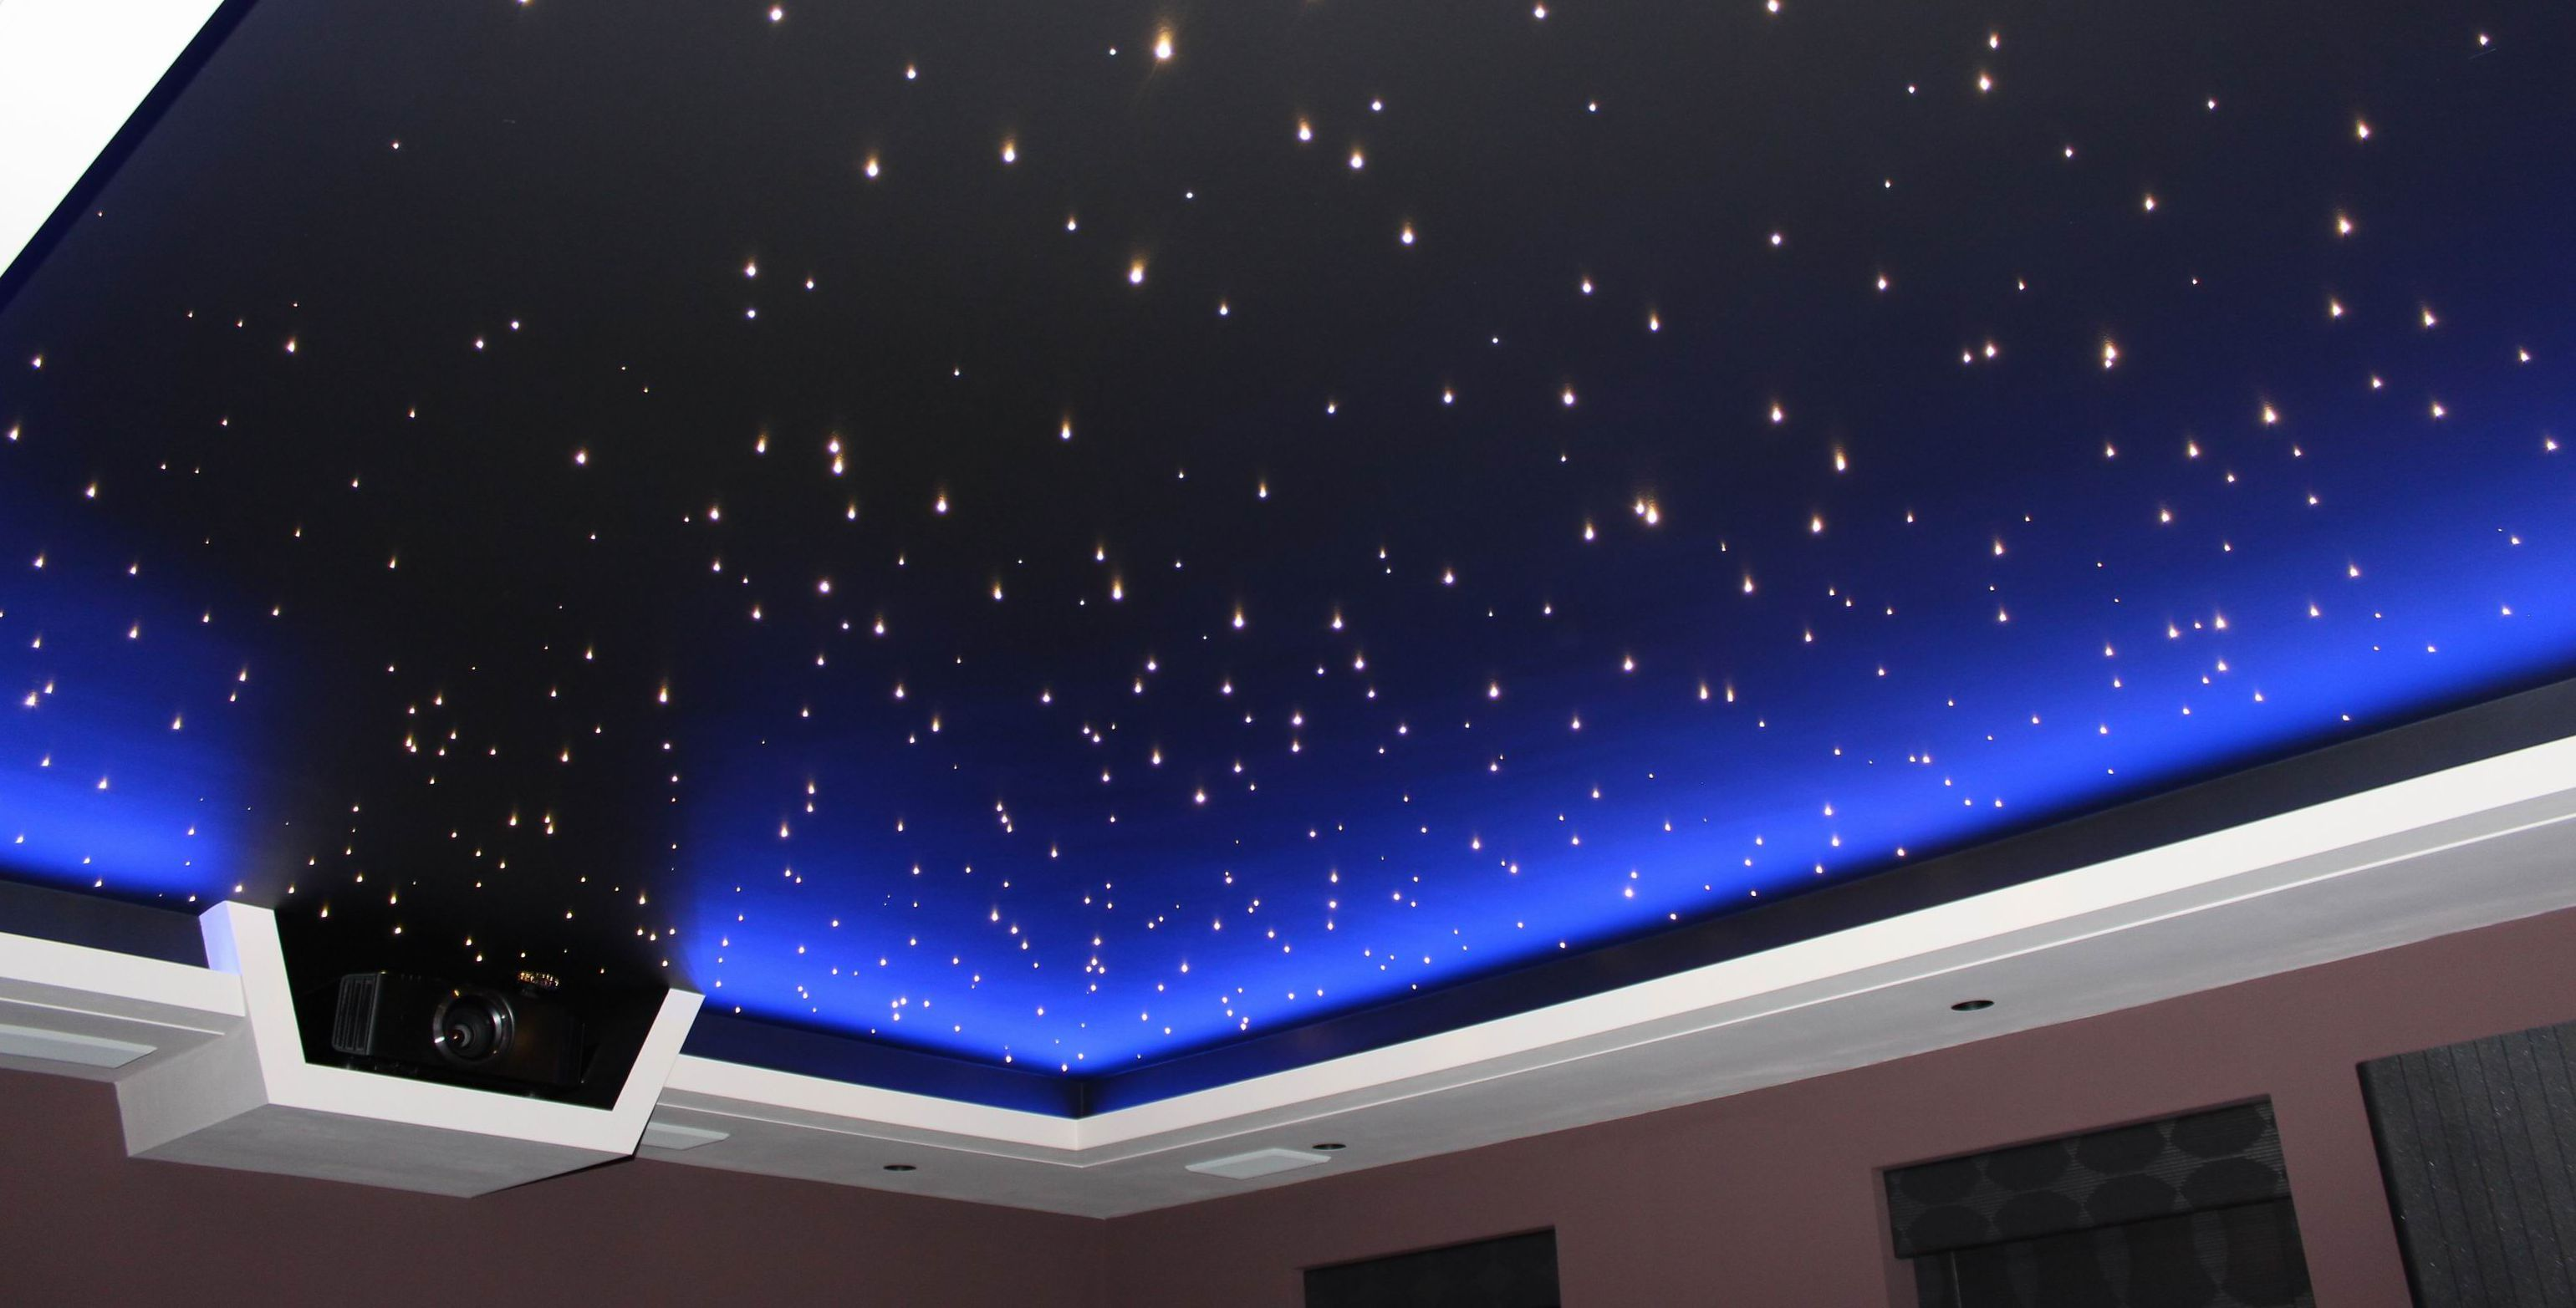 led home lighting projects home decor pinterest cinema